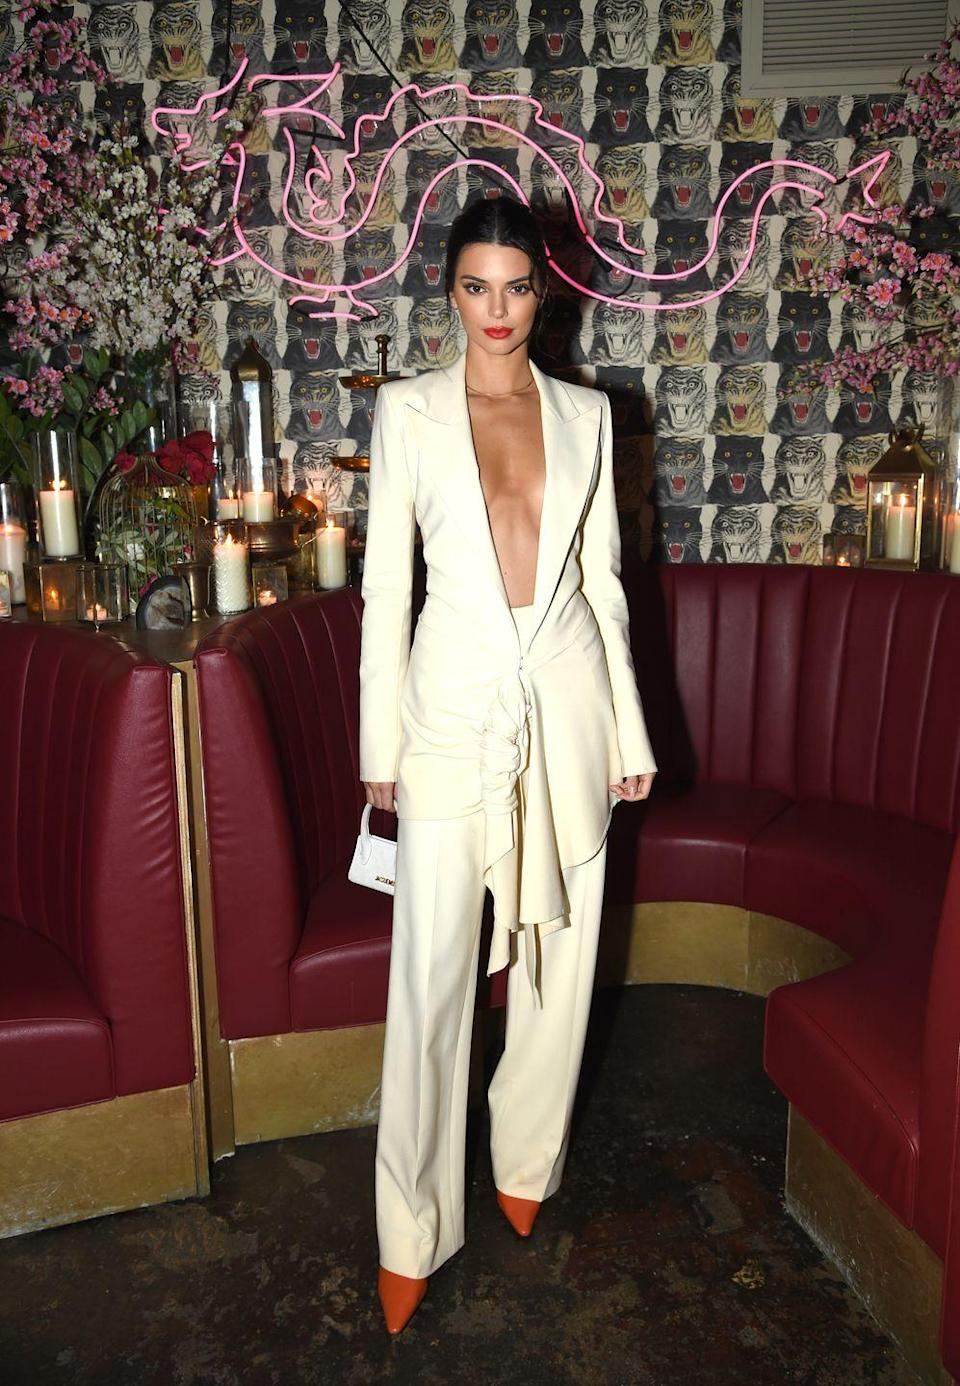 <p>Kendall wore a crisp off-white suit for the Business Of Fashion 'The Age Of Influence' party in NYC, May 2018. She teamed the with pointed-toe stiletto heels and carried a mini white handbag. </p>